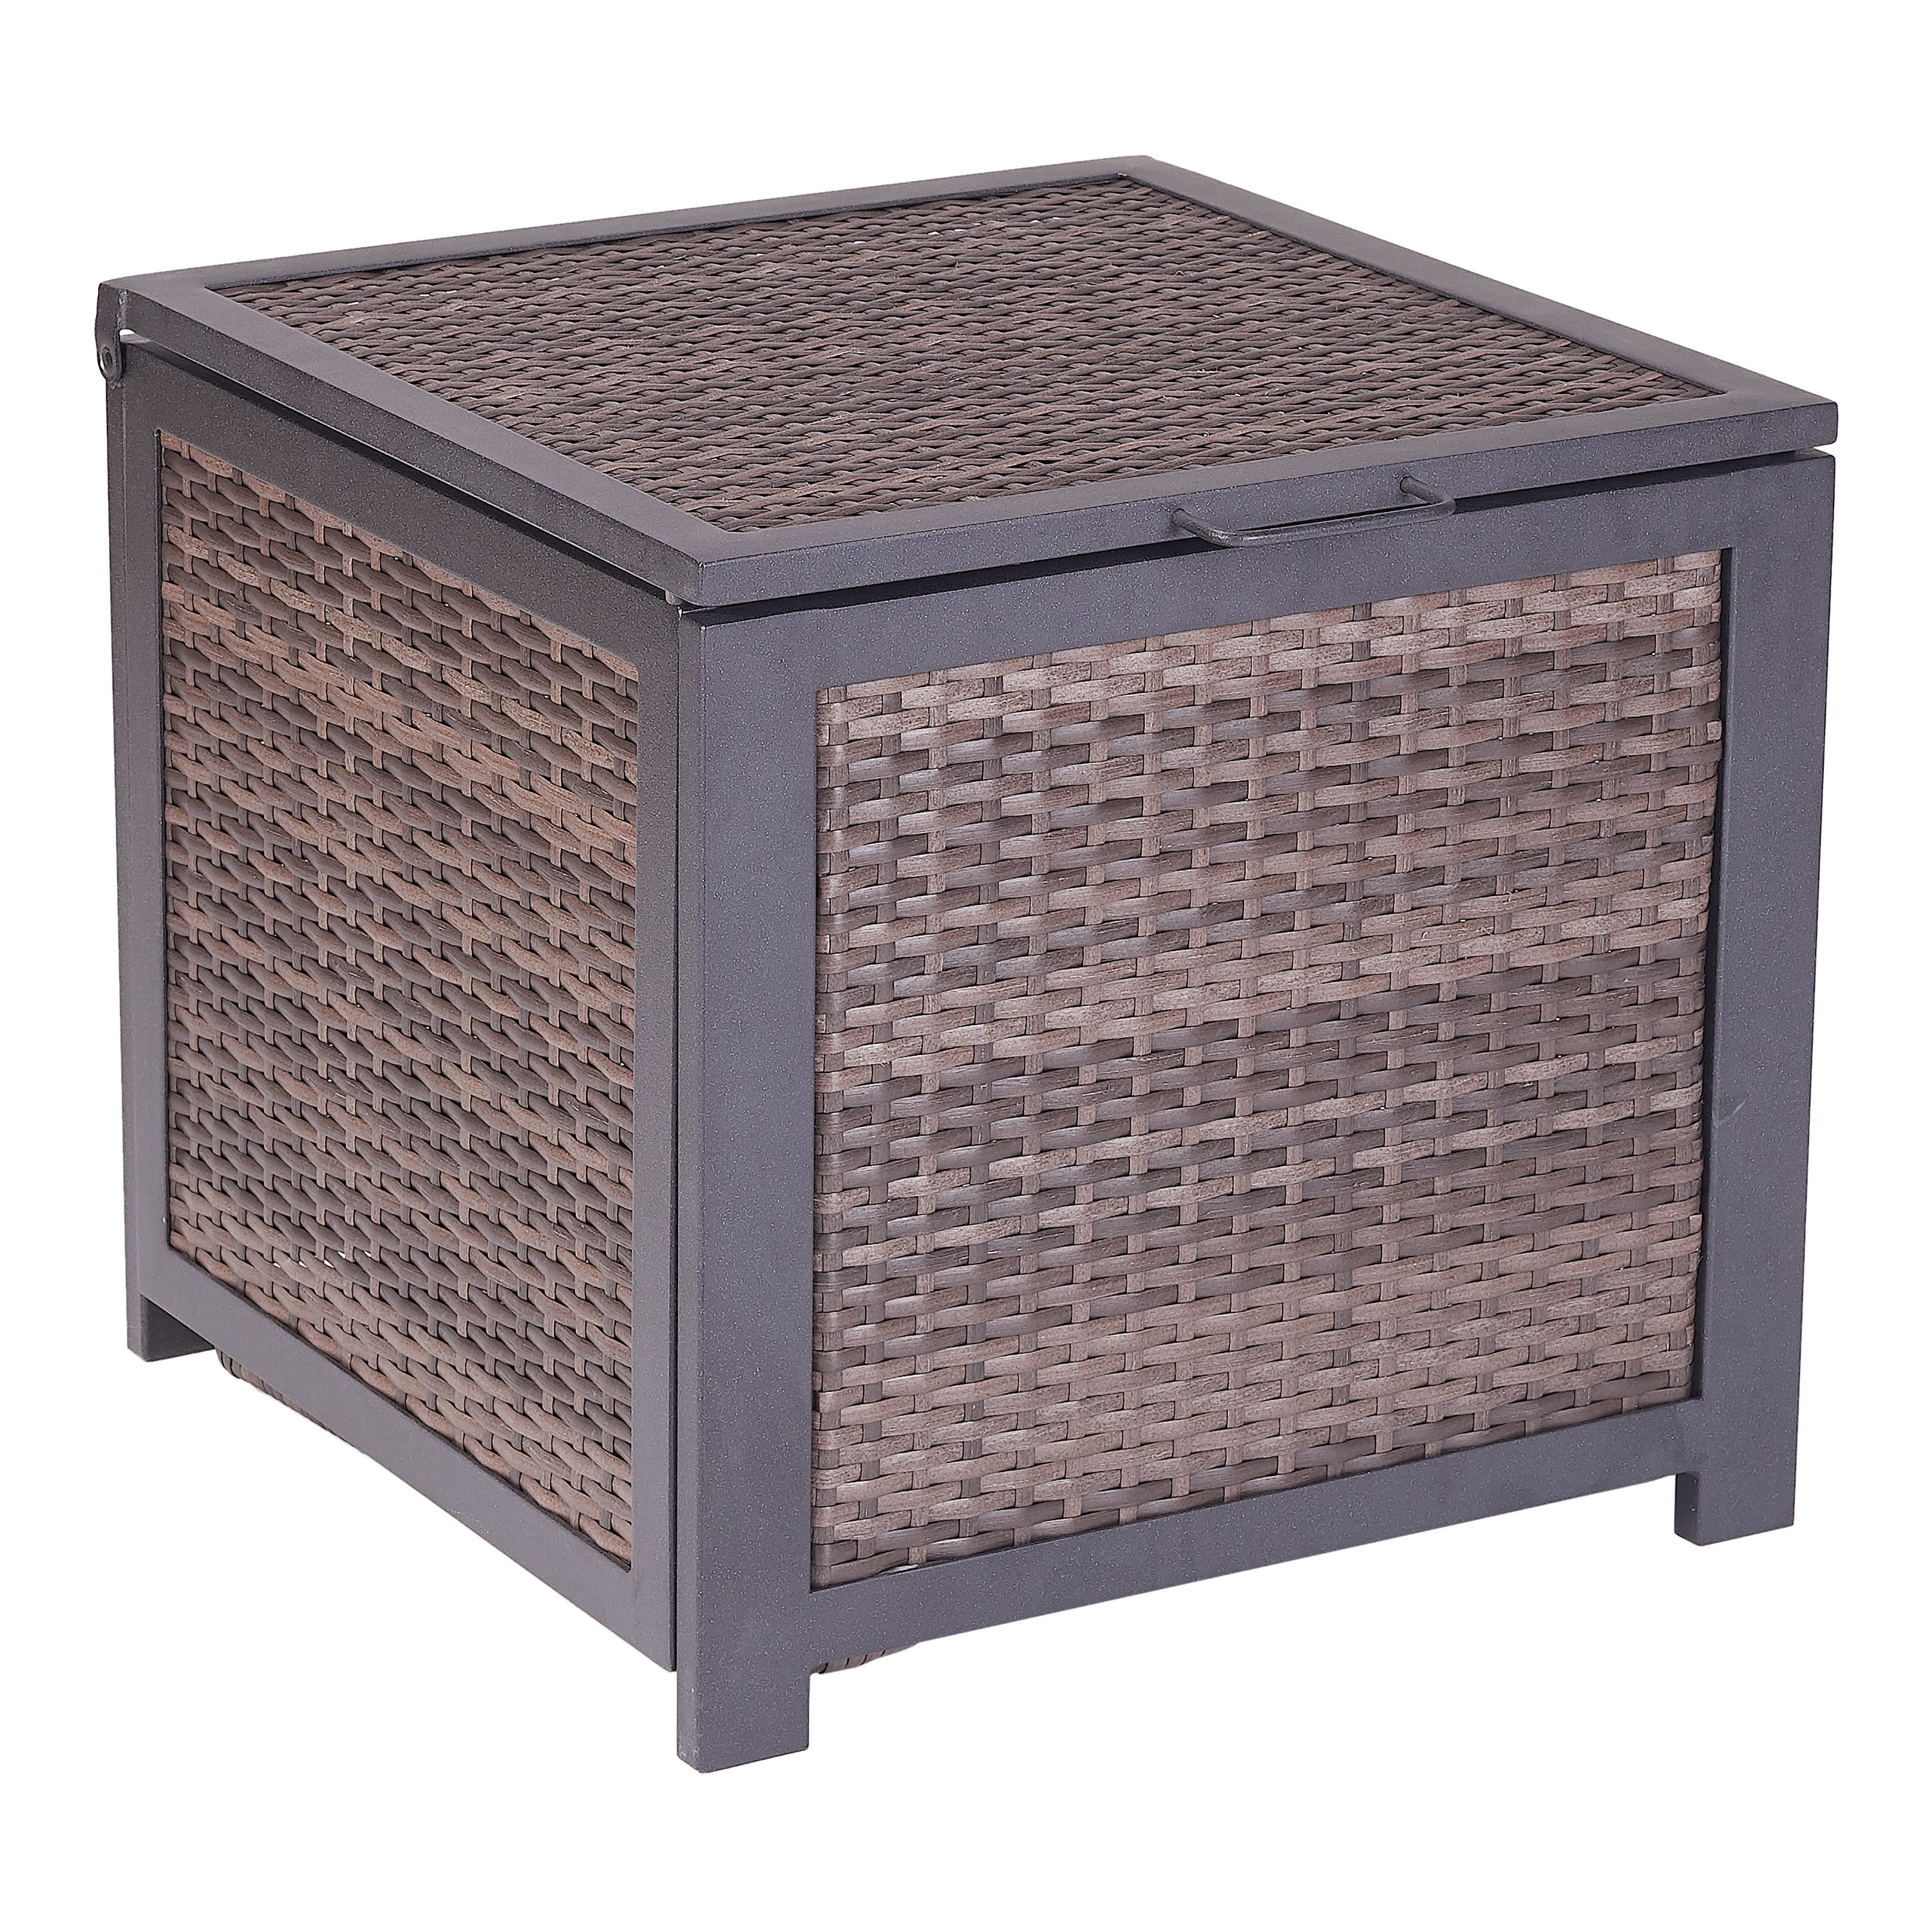 Mainstays Cassel Outdoor Wicker Storage Cube in Espresso